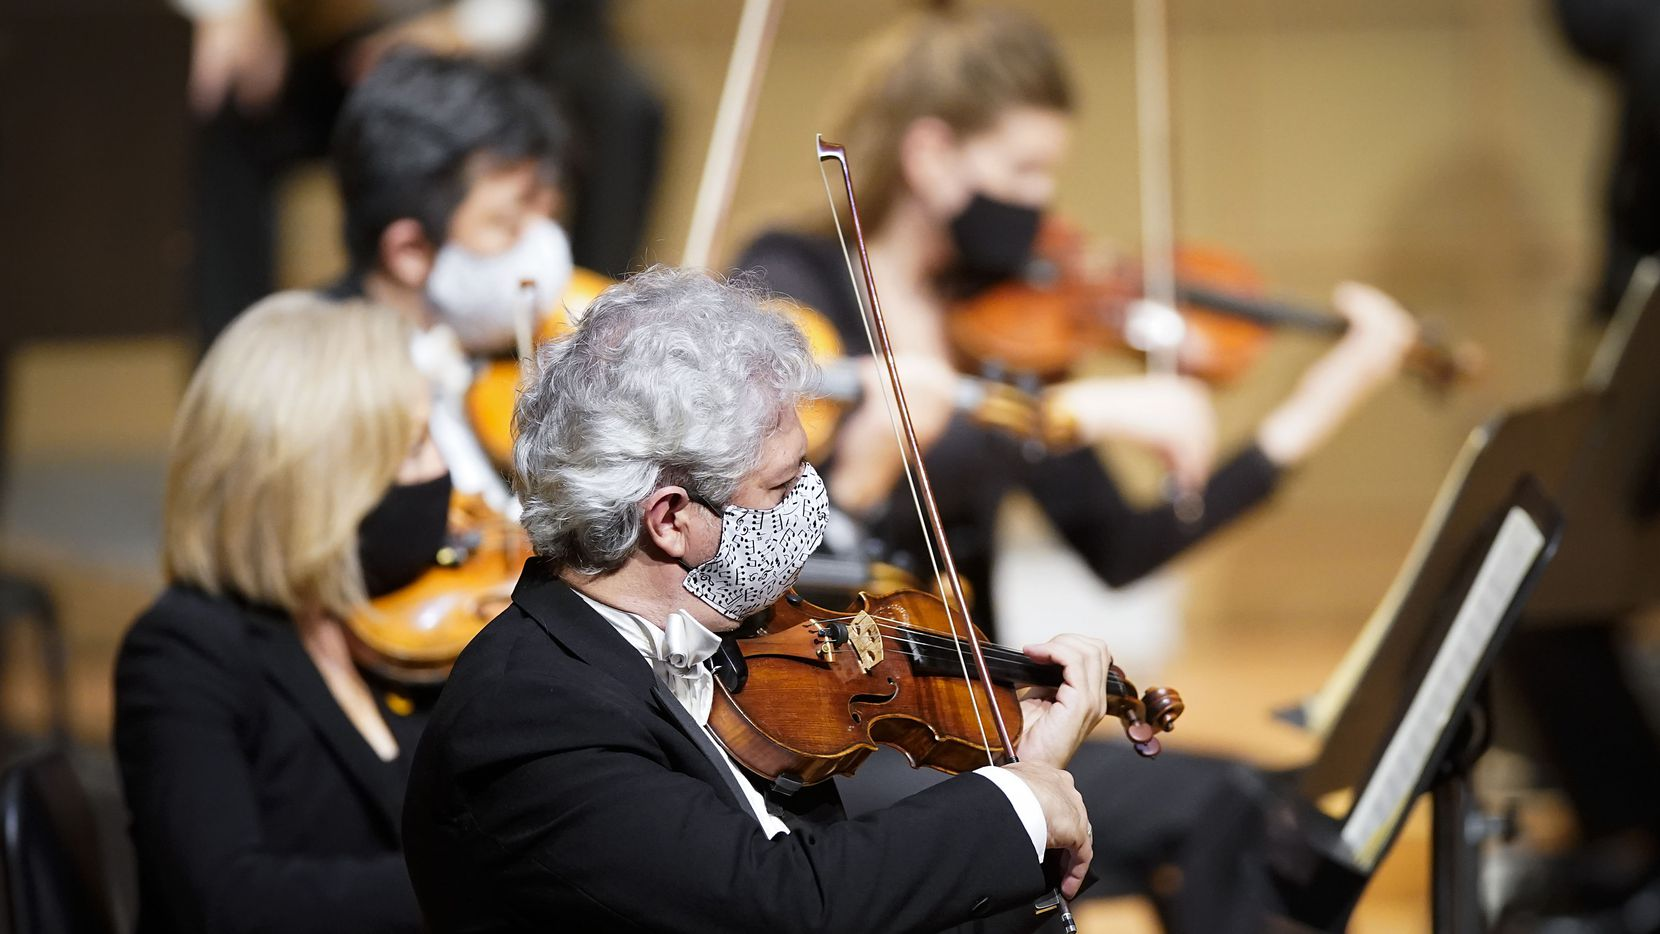 String players wear face masks as they perform during the season-opening Dallas Symphony concert at the Meyerson Symphony Center in September. Indoor venues across North Texas are beginning to resume indoor concerts during the COVID-19 pandemic, including the McKinney Performing Arts Center, which will host an indoor show this weekend.